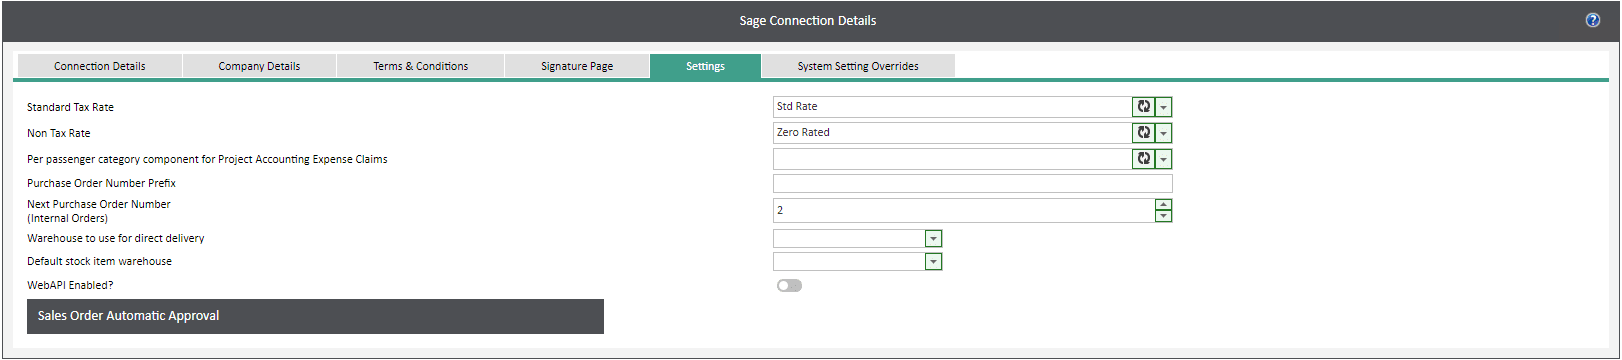 Sicon WAP System Settings Help and User Guide - WAP System HUG Section 28.5 Image 1